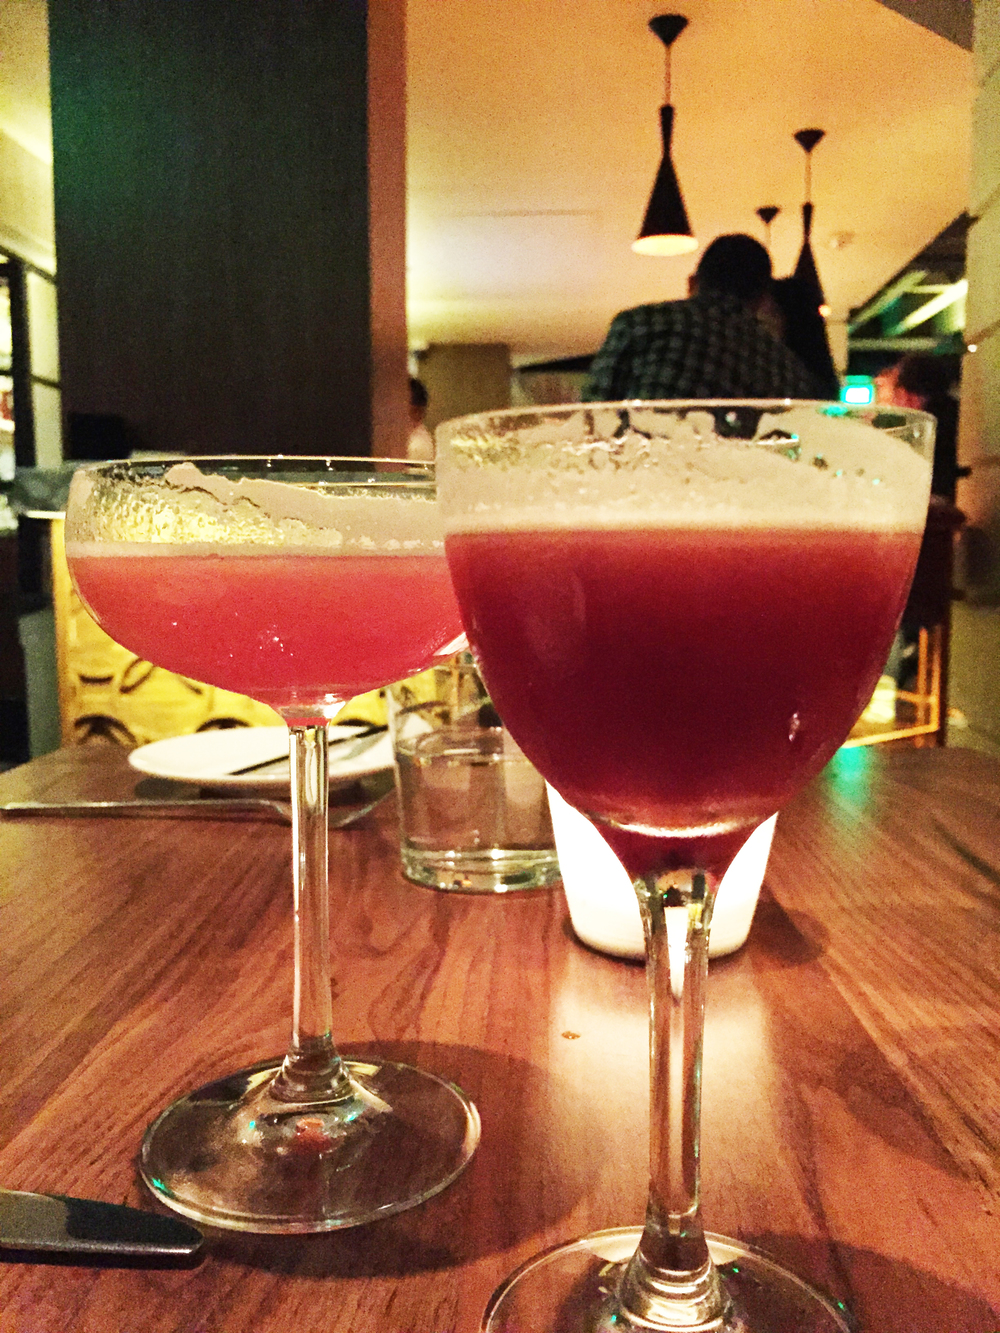 (left) The Good Bishopbarolo chinato, tequila, amaro, lemon, cinnamon, all spice tincture. cooling cups and danty drinks, william terington, 1869 (right) French Bulldogcherry brandy, gin, lime, absinthe. recipes for mixed drinks, hugo ensslin, 1916.